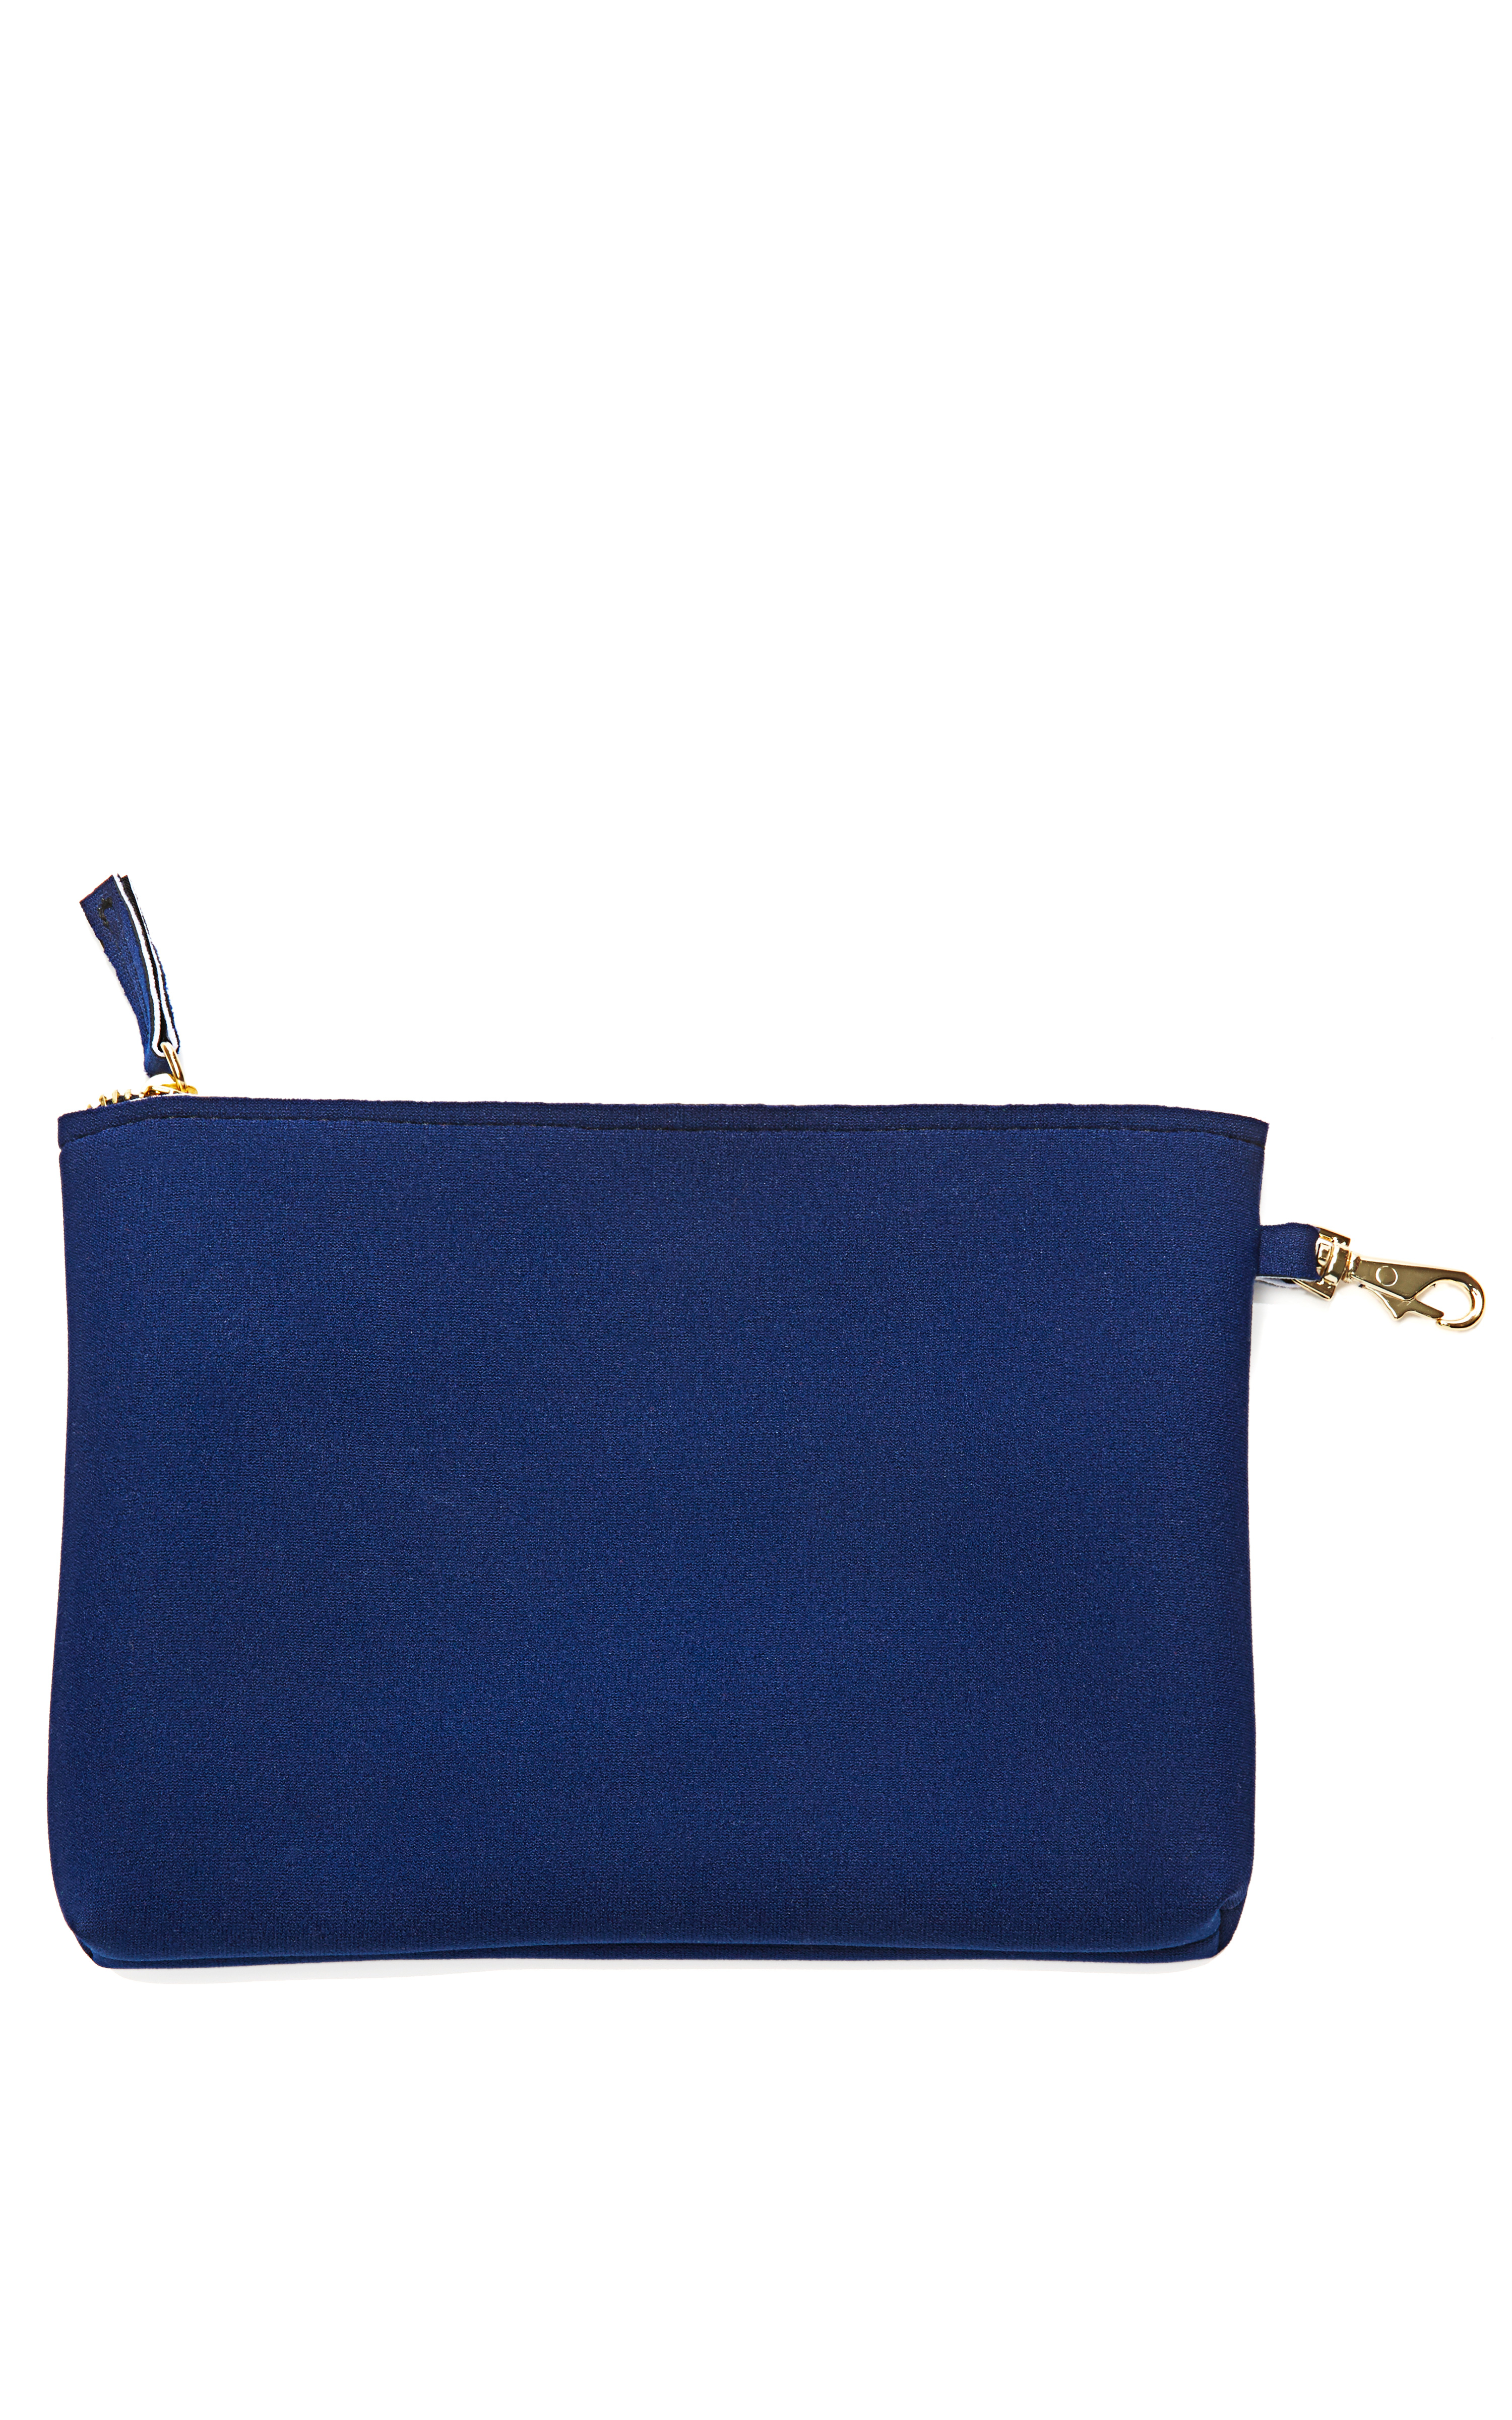 Leghilà Large Neoprene Beach Bag in Blue | Lyst